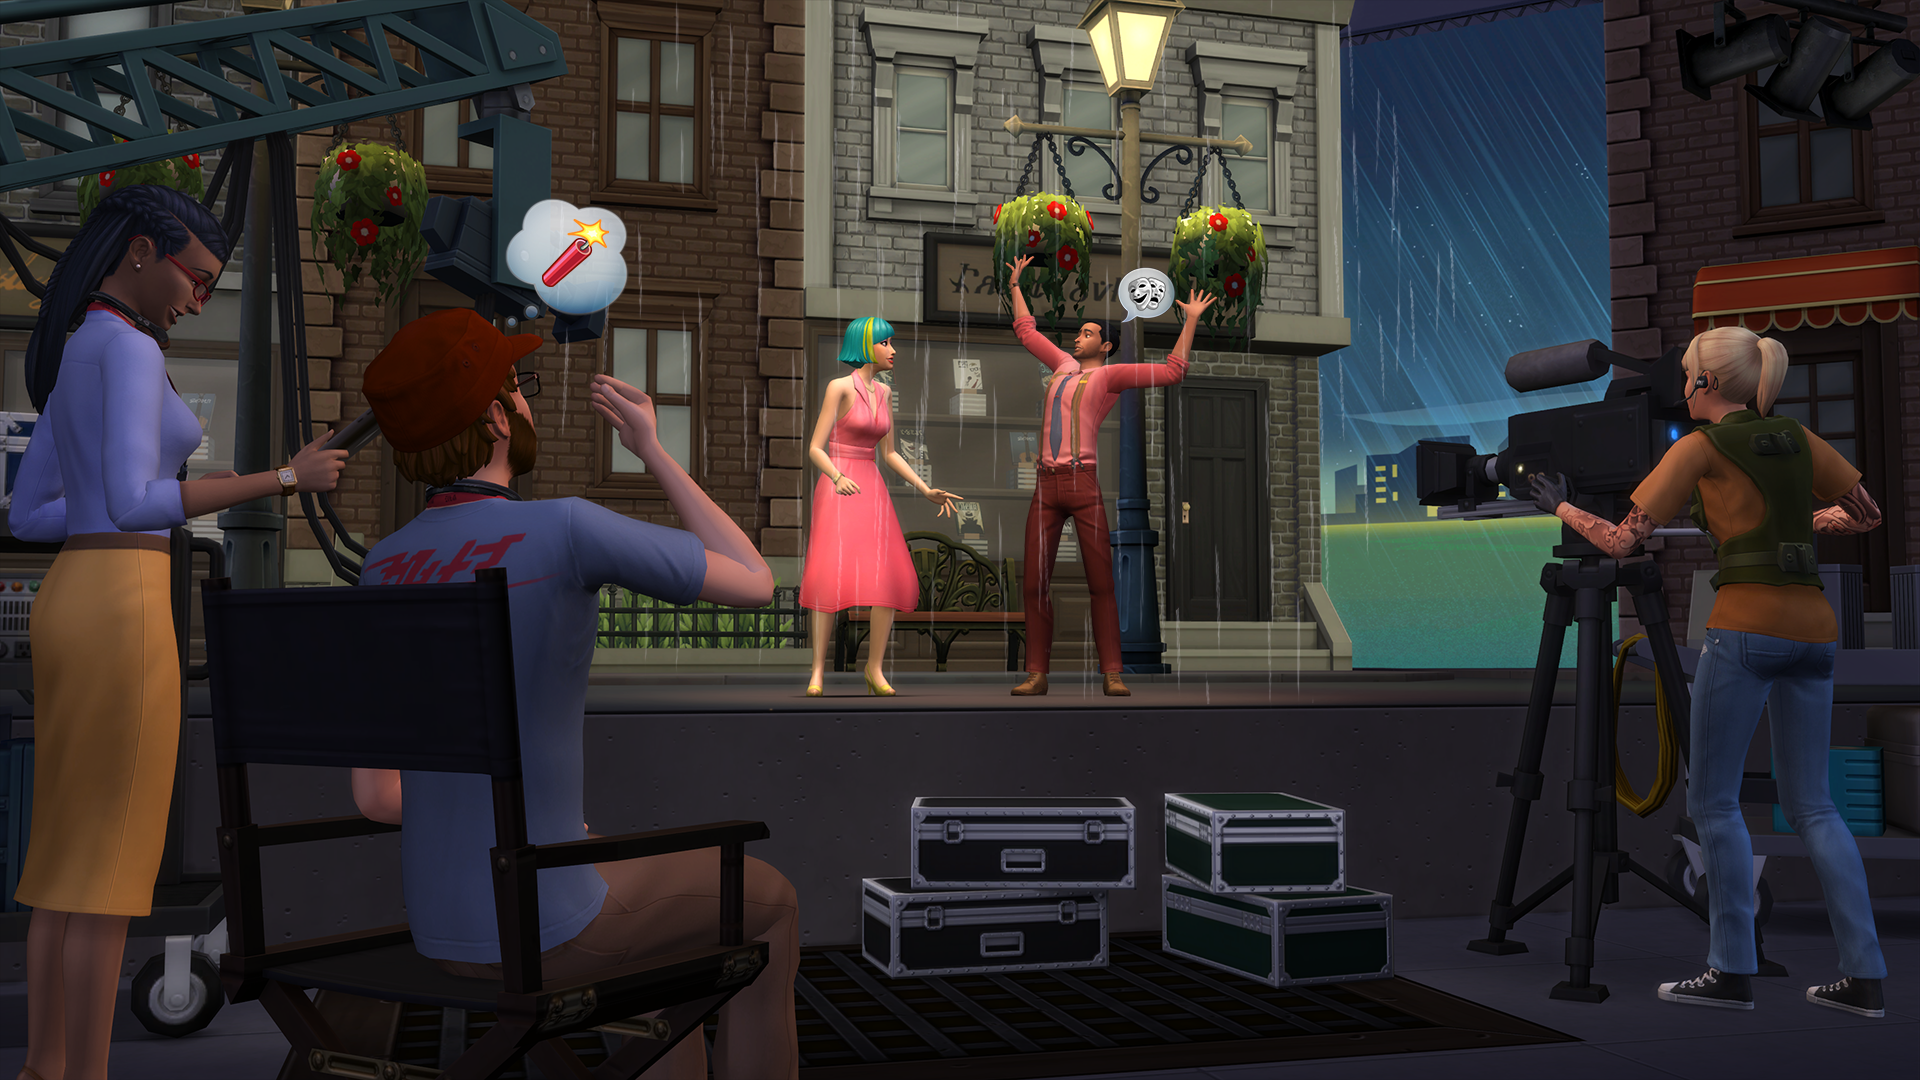 teh sims 4 get famous screenshot expansion pack release date